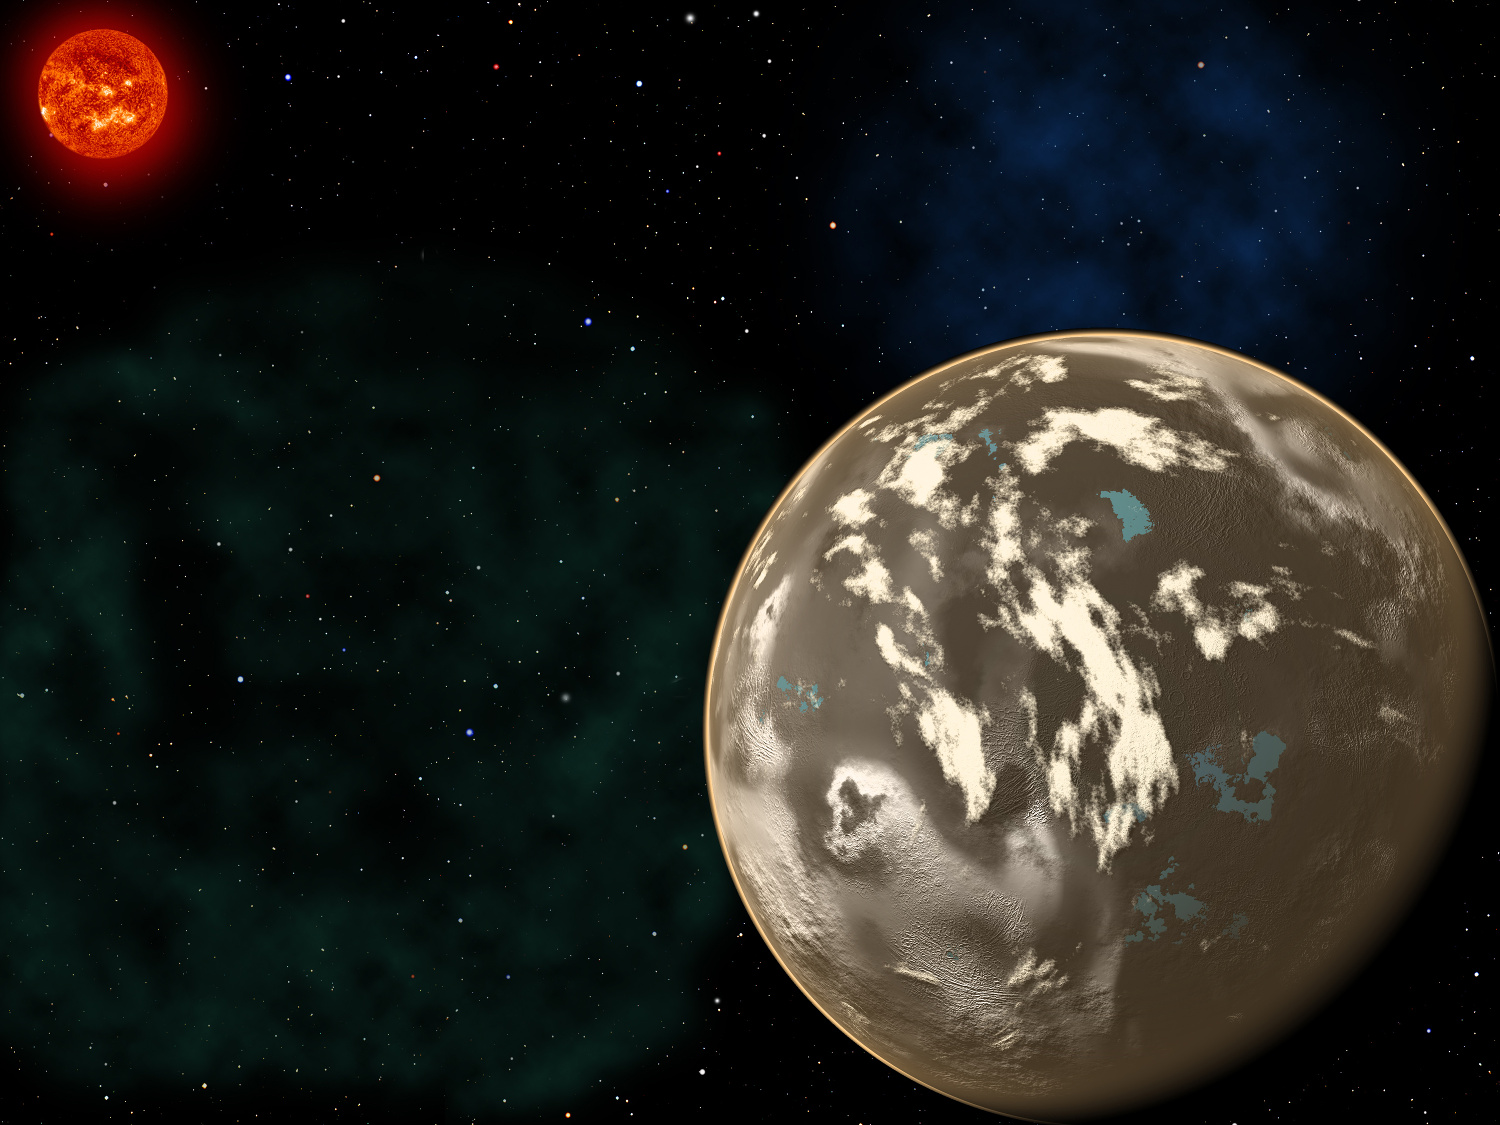 In this artist's conception, a carbon planet orbits a Sun-like star in the early universe. Young planetary systems lacking heavy chemical elements but relatively rich in carbon could form worlds made of graphite, carbides and diamond rather than Earth-like silicate rocks. Blue patches show where water has pooled on the planet's surface, forming potential habitats for alien life. Image credit: Christine Pulliam (CfA). Sun image: NASA/SDO.